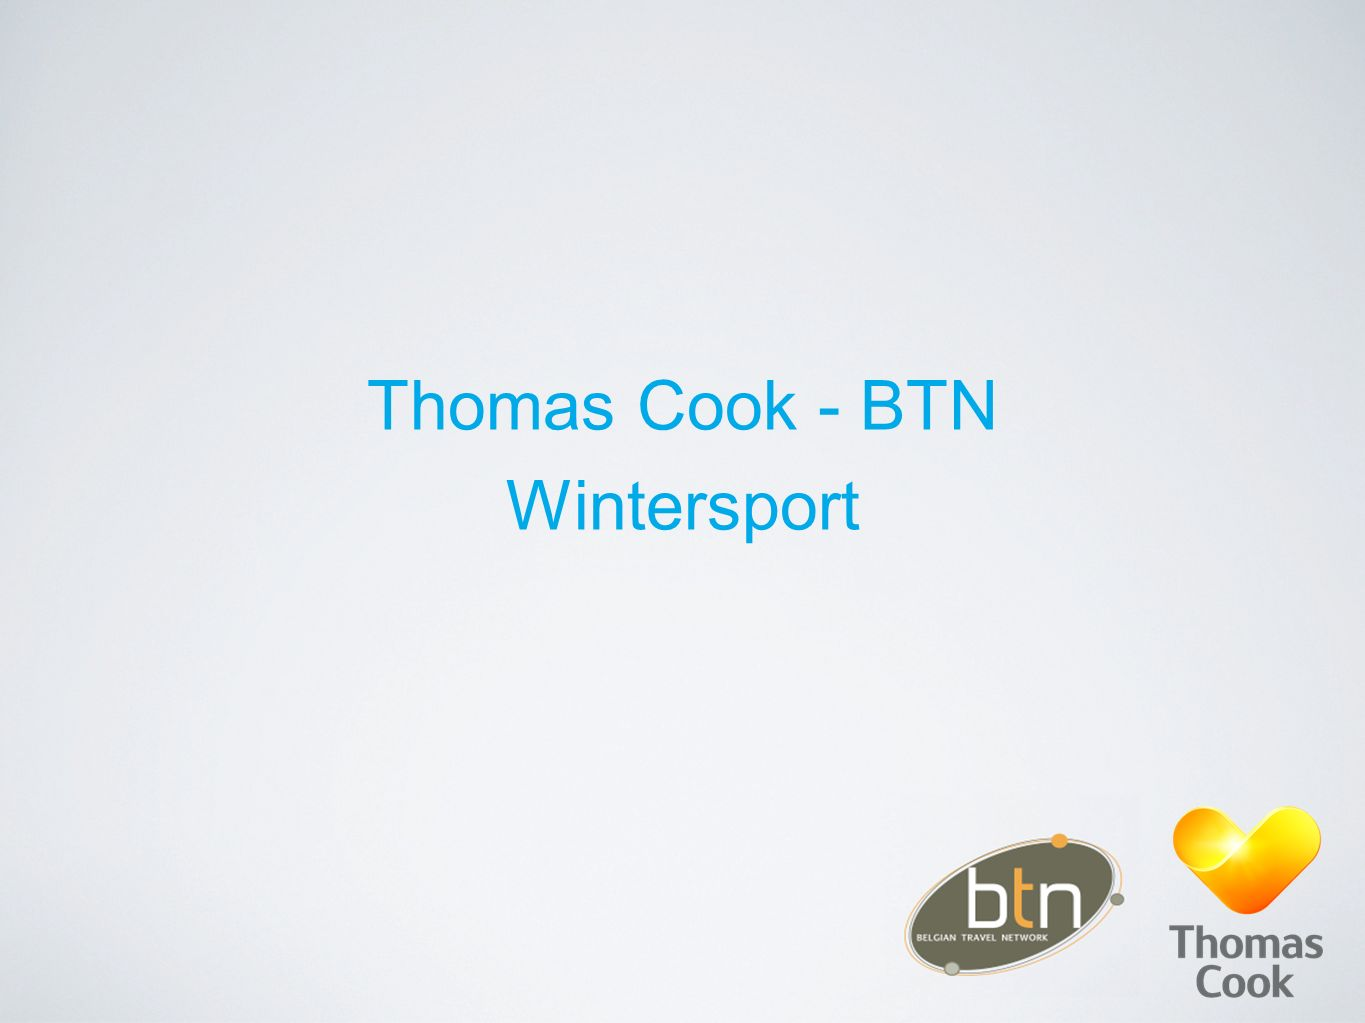 Thomas Cook - BTN Wintersport